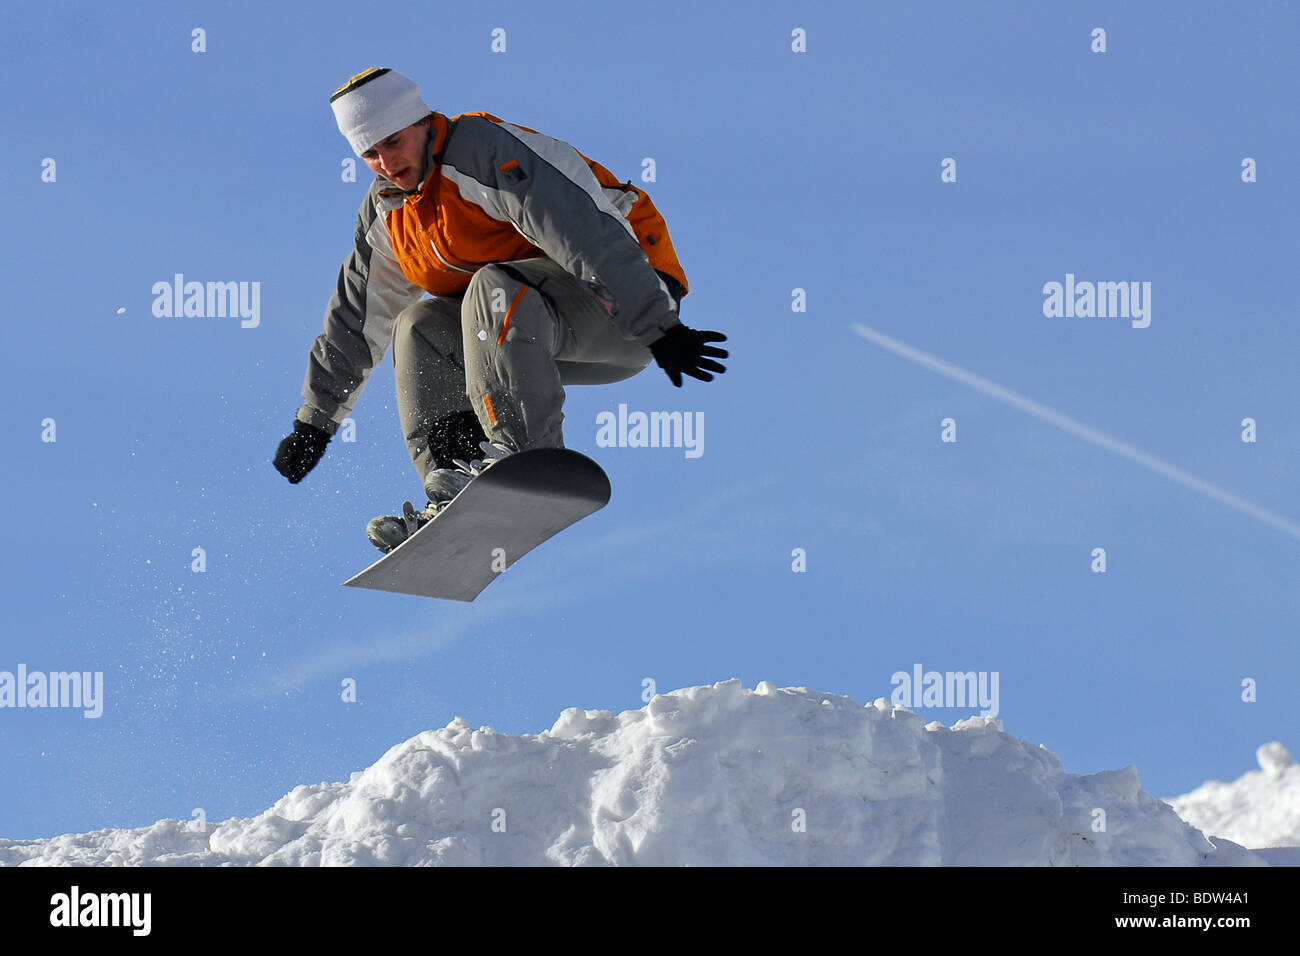 Snowboarder im Harz, Wintersport, schnee, deutschland, snowboarding, jumping, man, low mountain range, germany Stock Photo